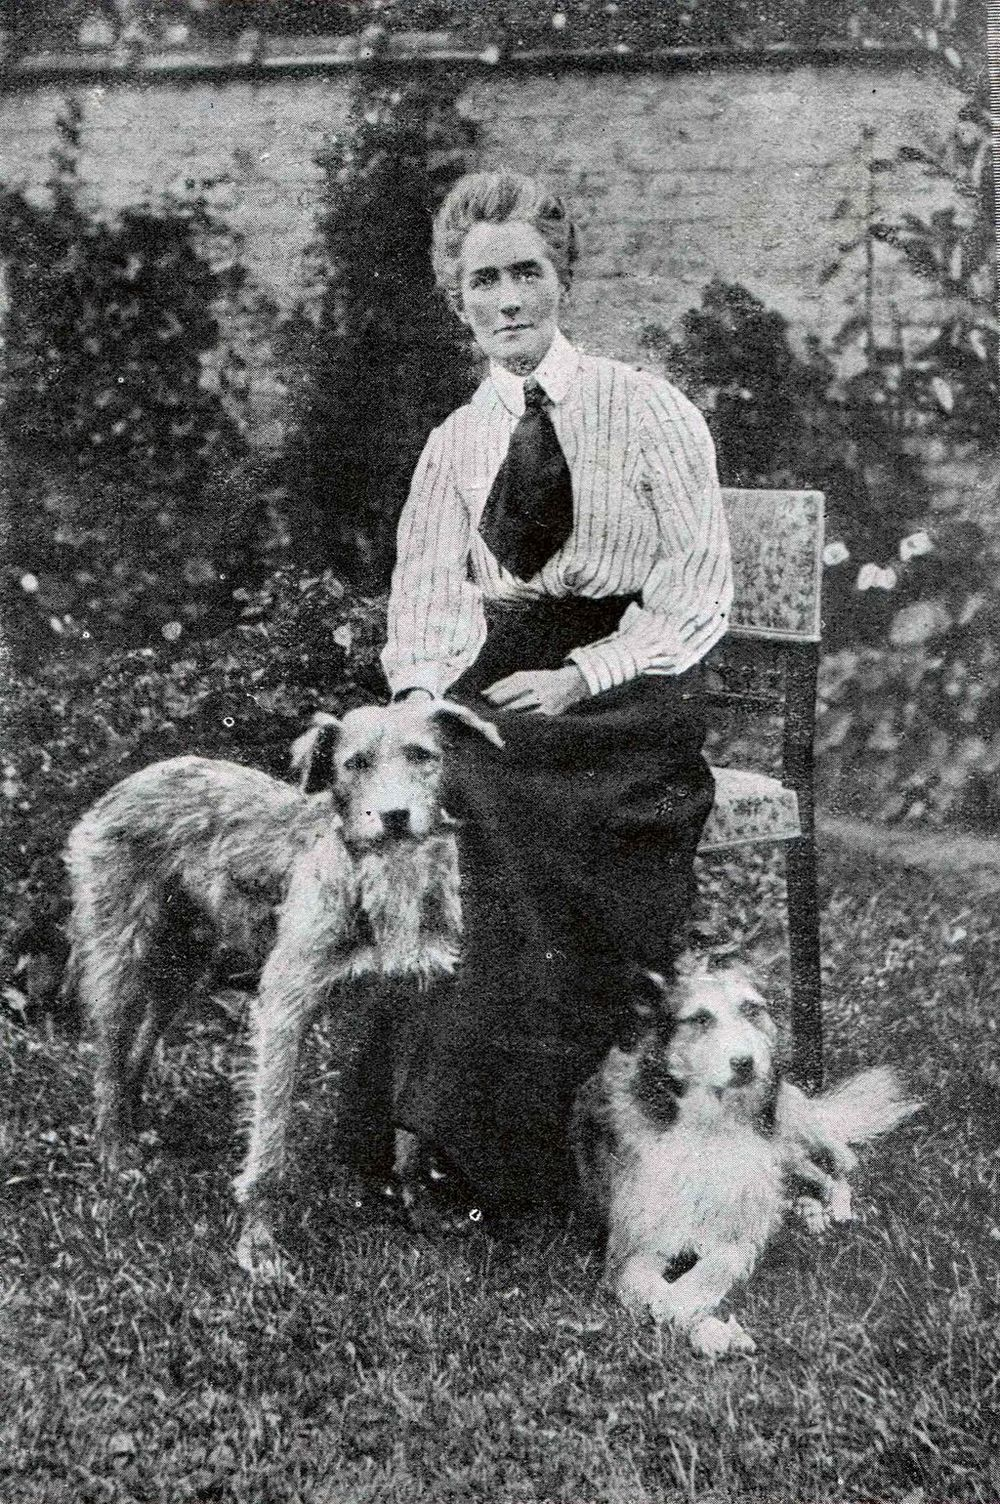 World War I heroine Edith Cavell